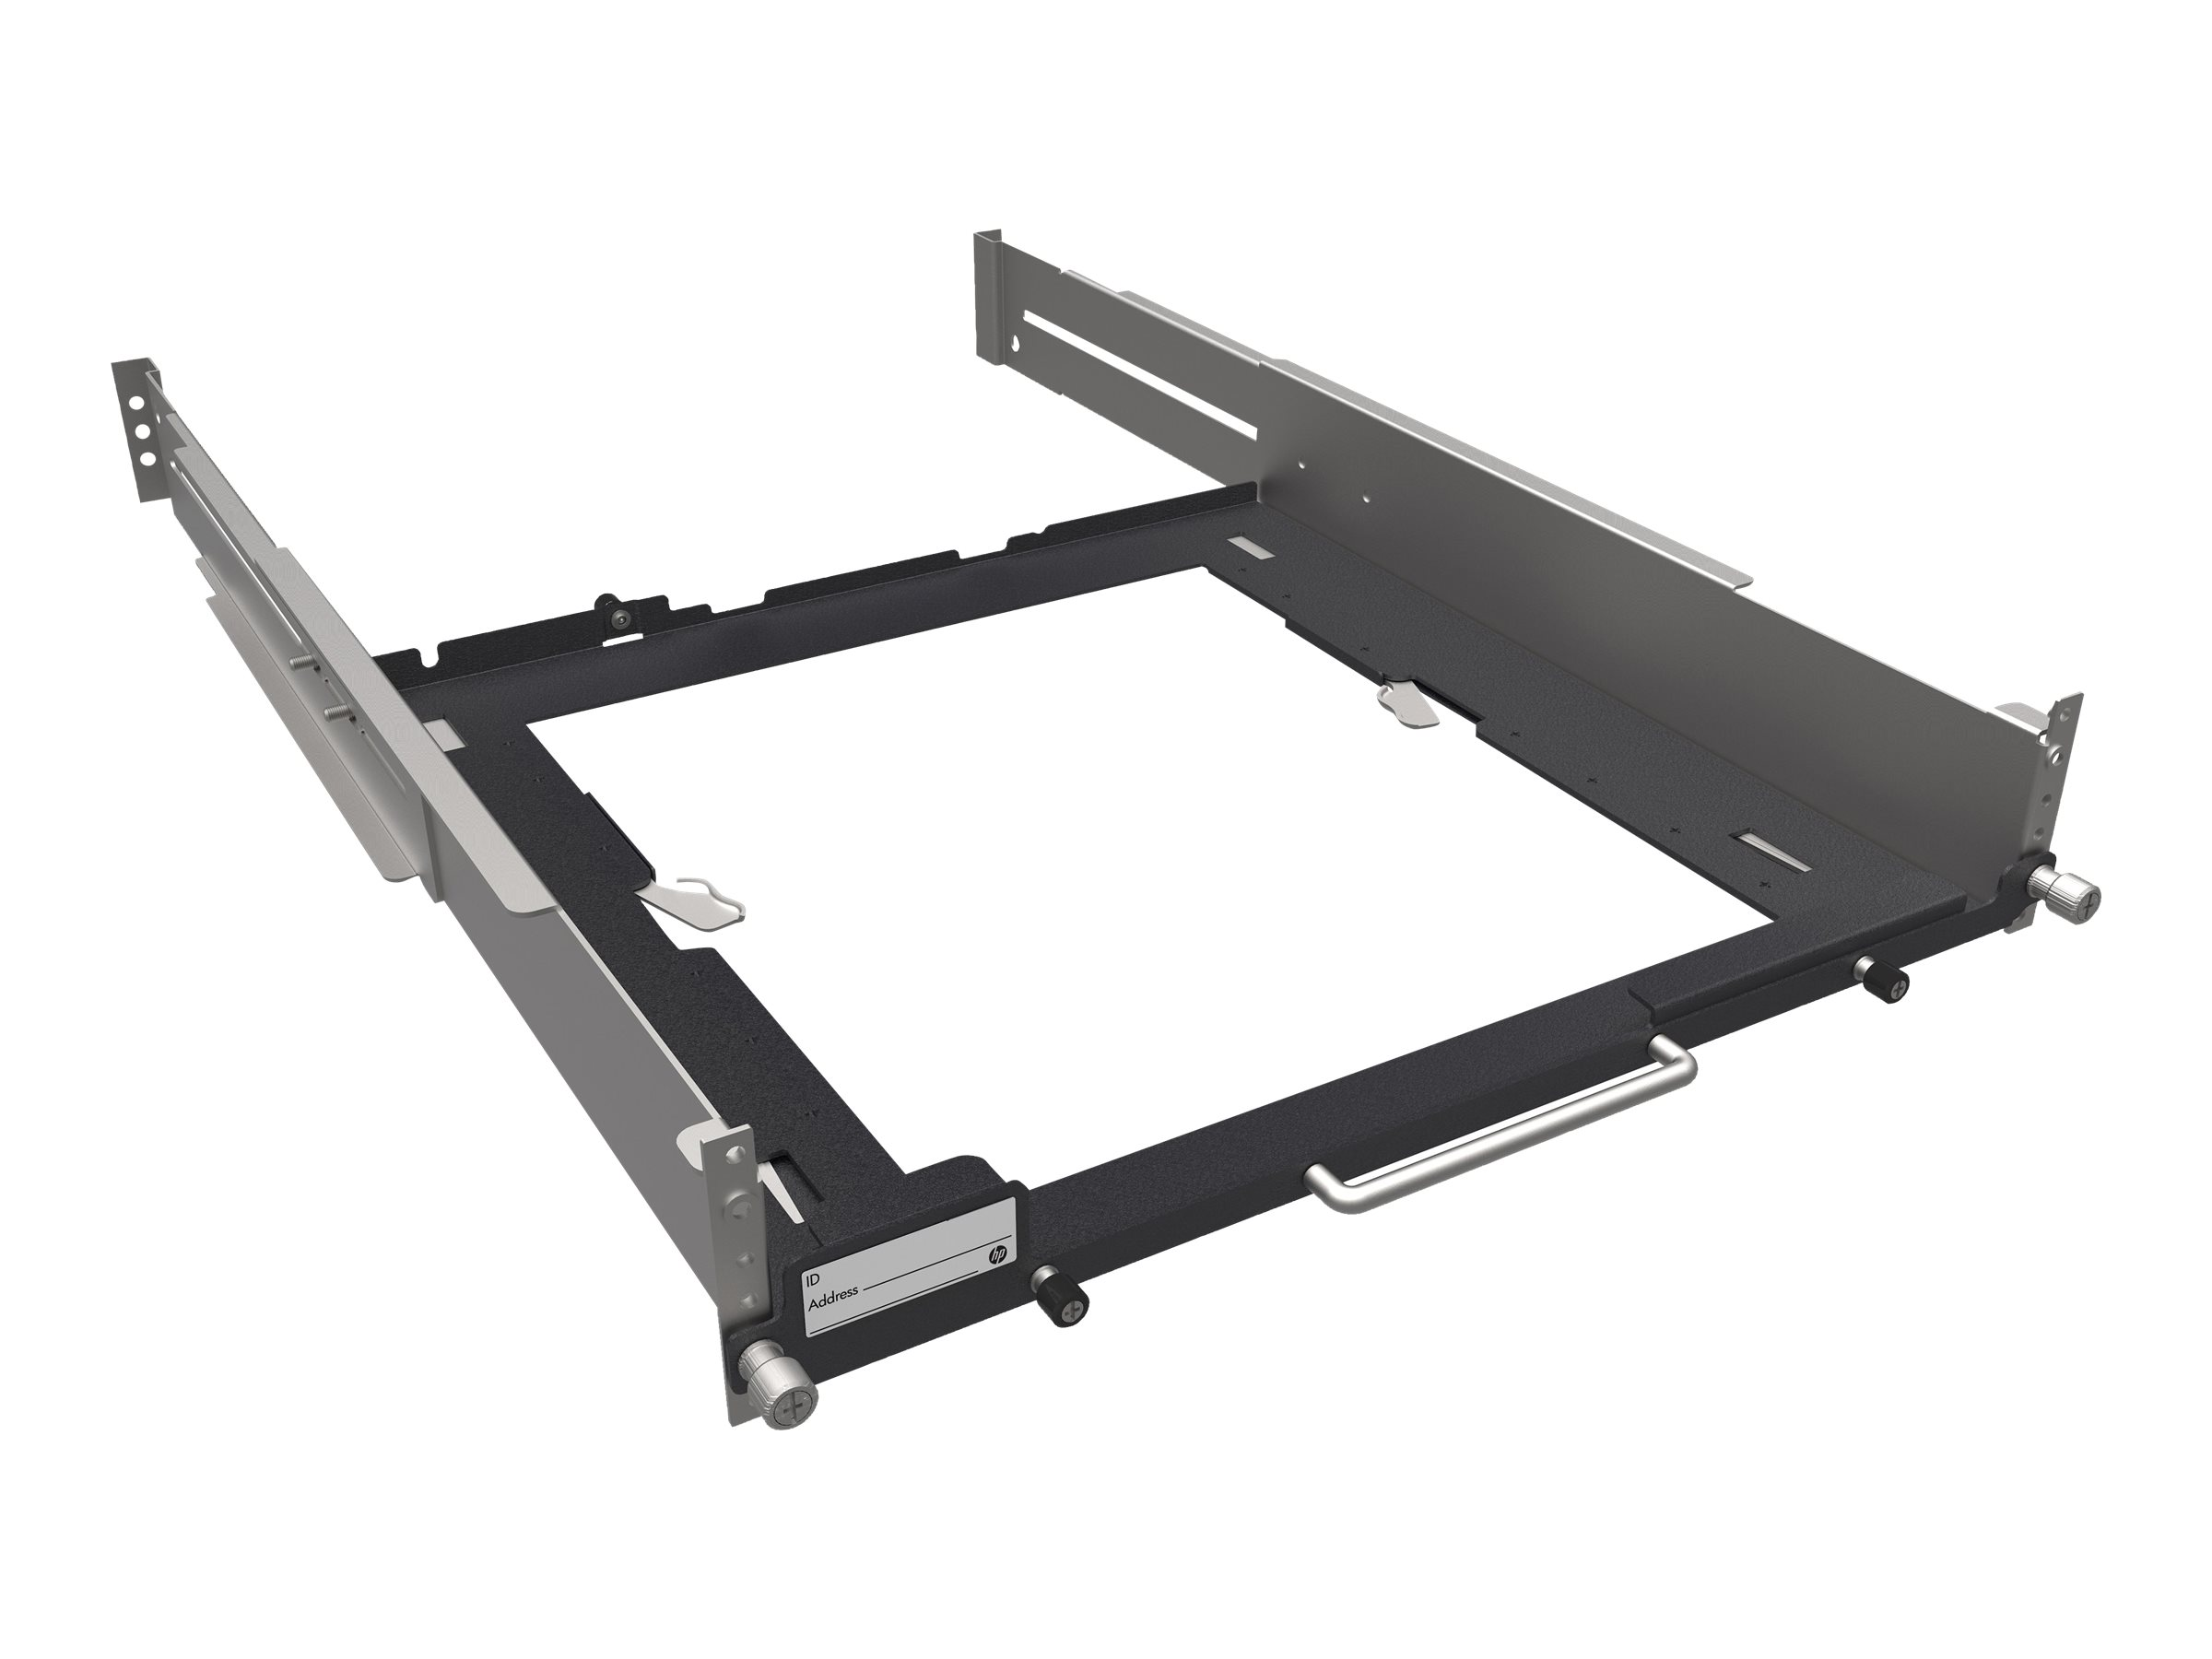 HP Mini Chassis ePSU rack bracket kit